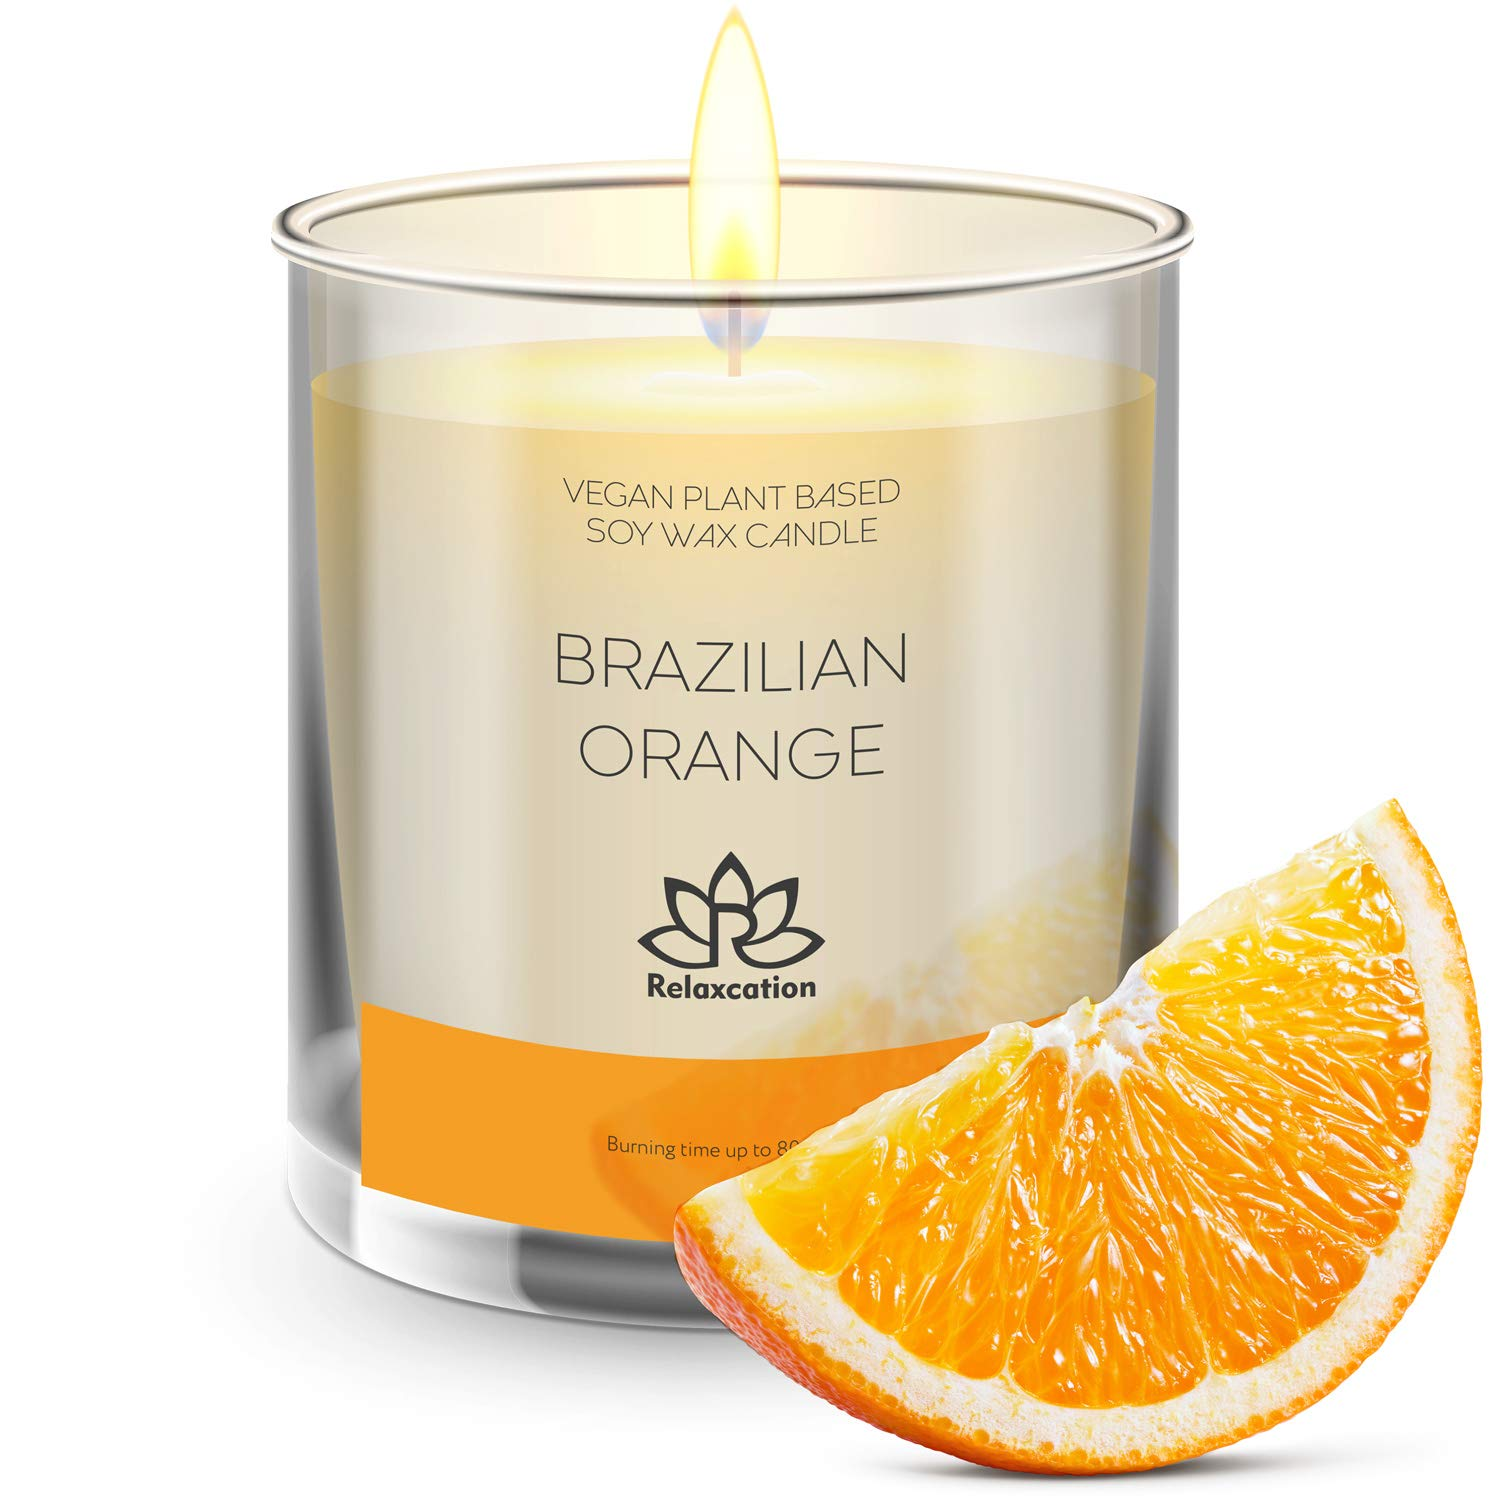 Amazon Com Natural Soy Wax Candle In Glass Jar Luxury Brazilian Orange Scented Soy Candles Fresh And Cheerfulness Long Burning 80 Hours Beauty